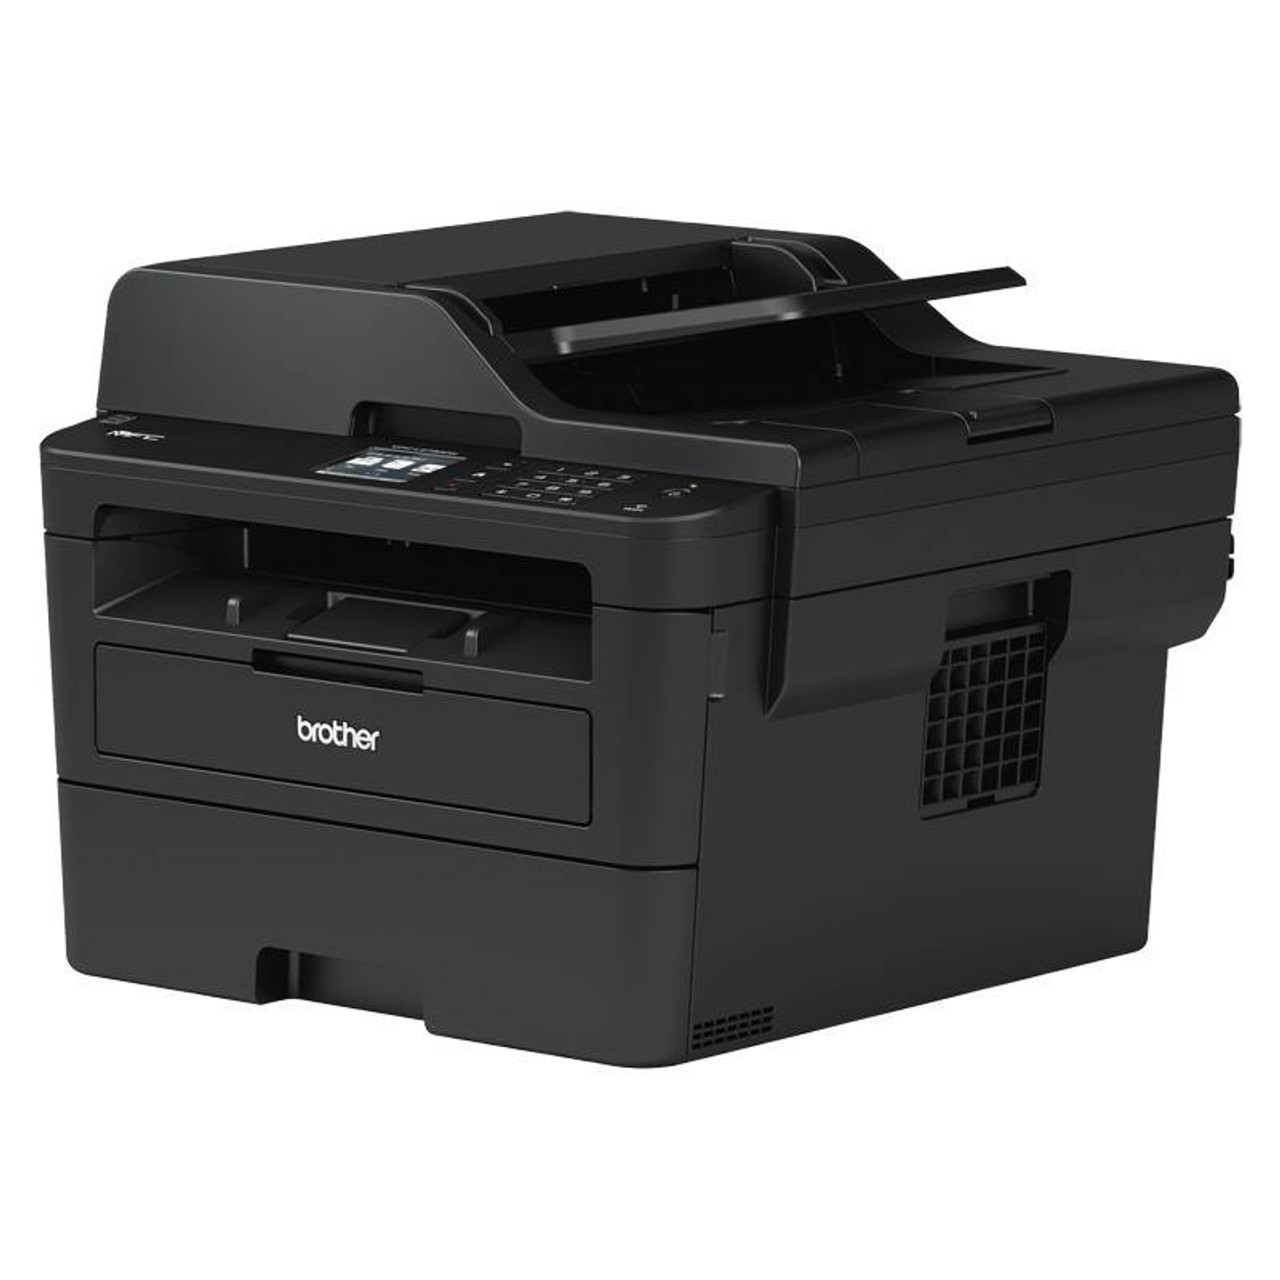 Product image for Brother MFC-L2730DW Monochrome Laser Printer | CX Computer Superstore